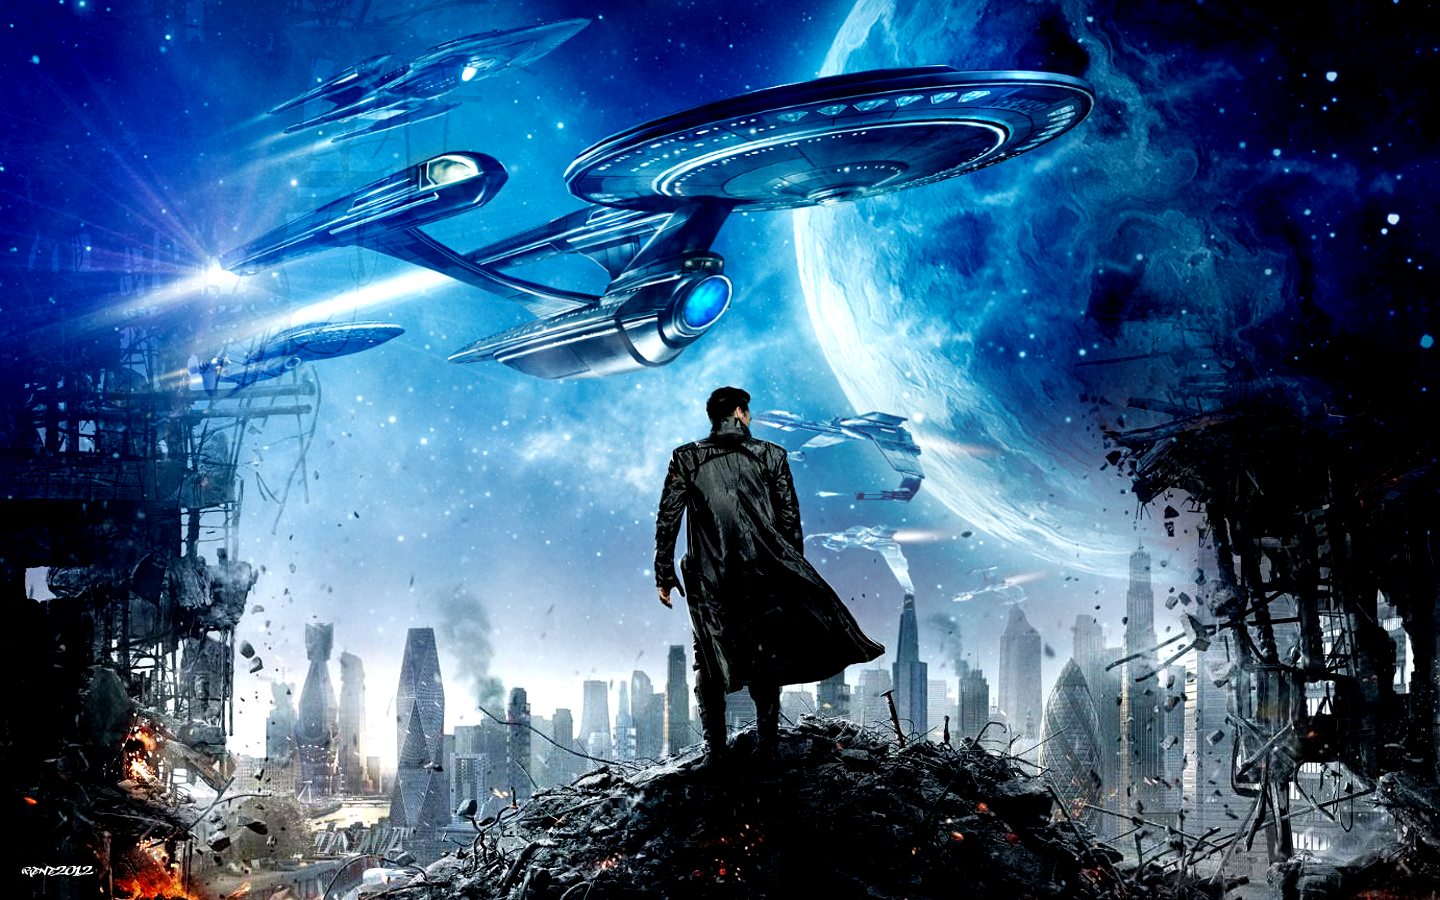 Star Trek Into Darkness 2013 Find Out How A Non Trekkie Rated This Sci Fi Spectacular Cinesocialuk